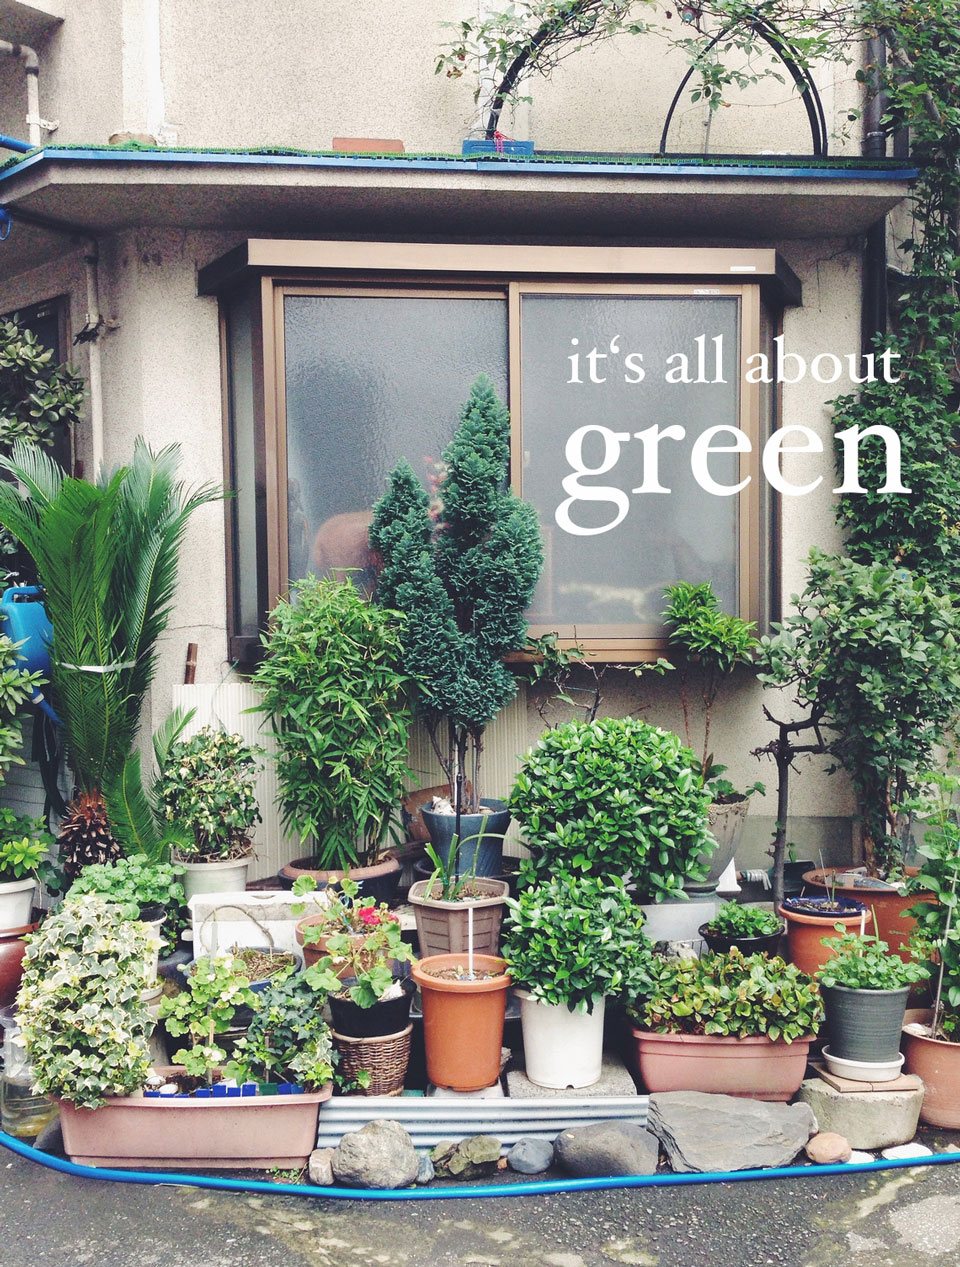 I just love who people put plants in from of their houses to make everything more green even in the city